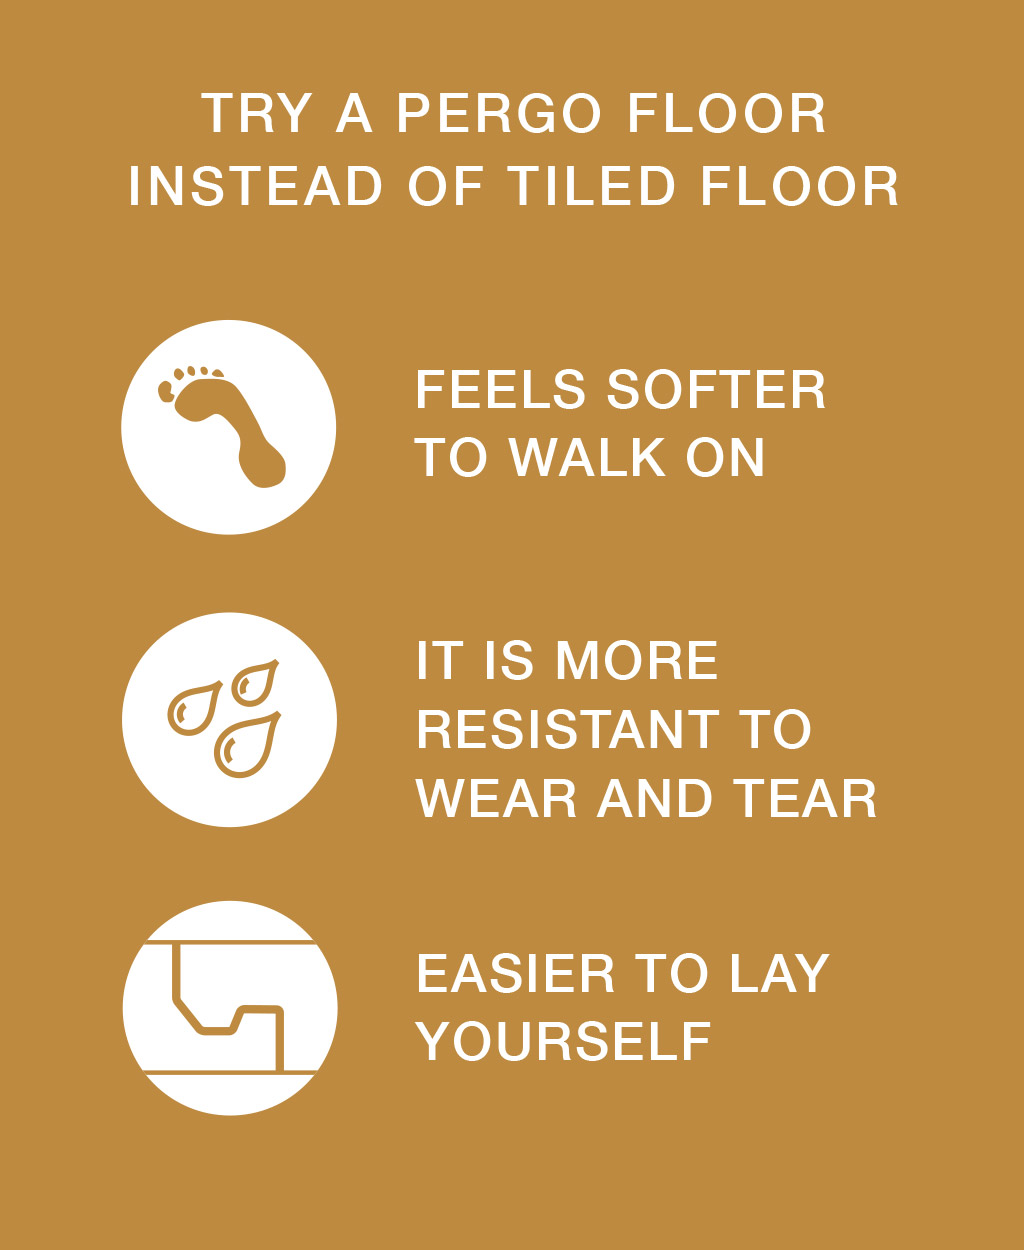 pergo-infographic-forget-tiled-flooring